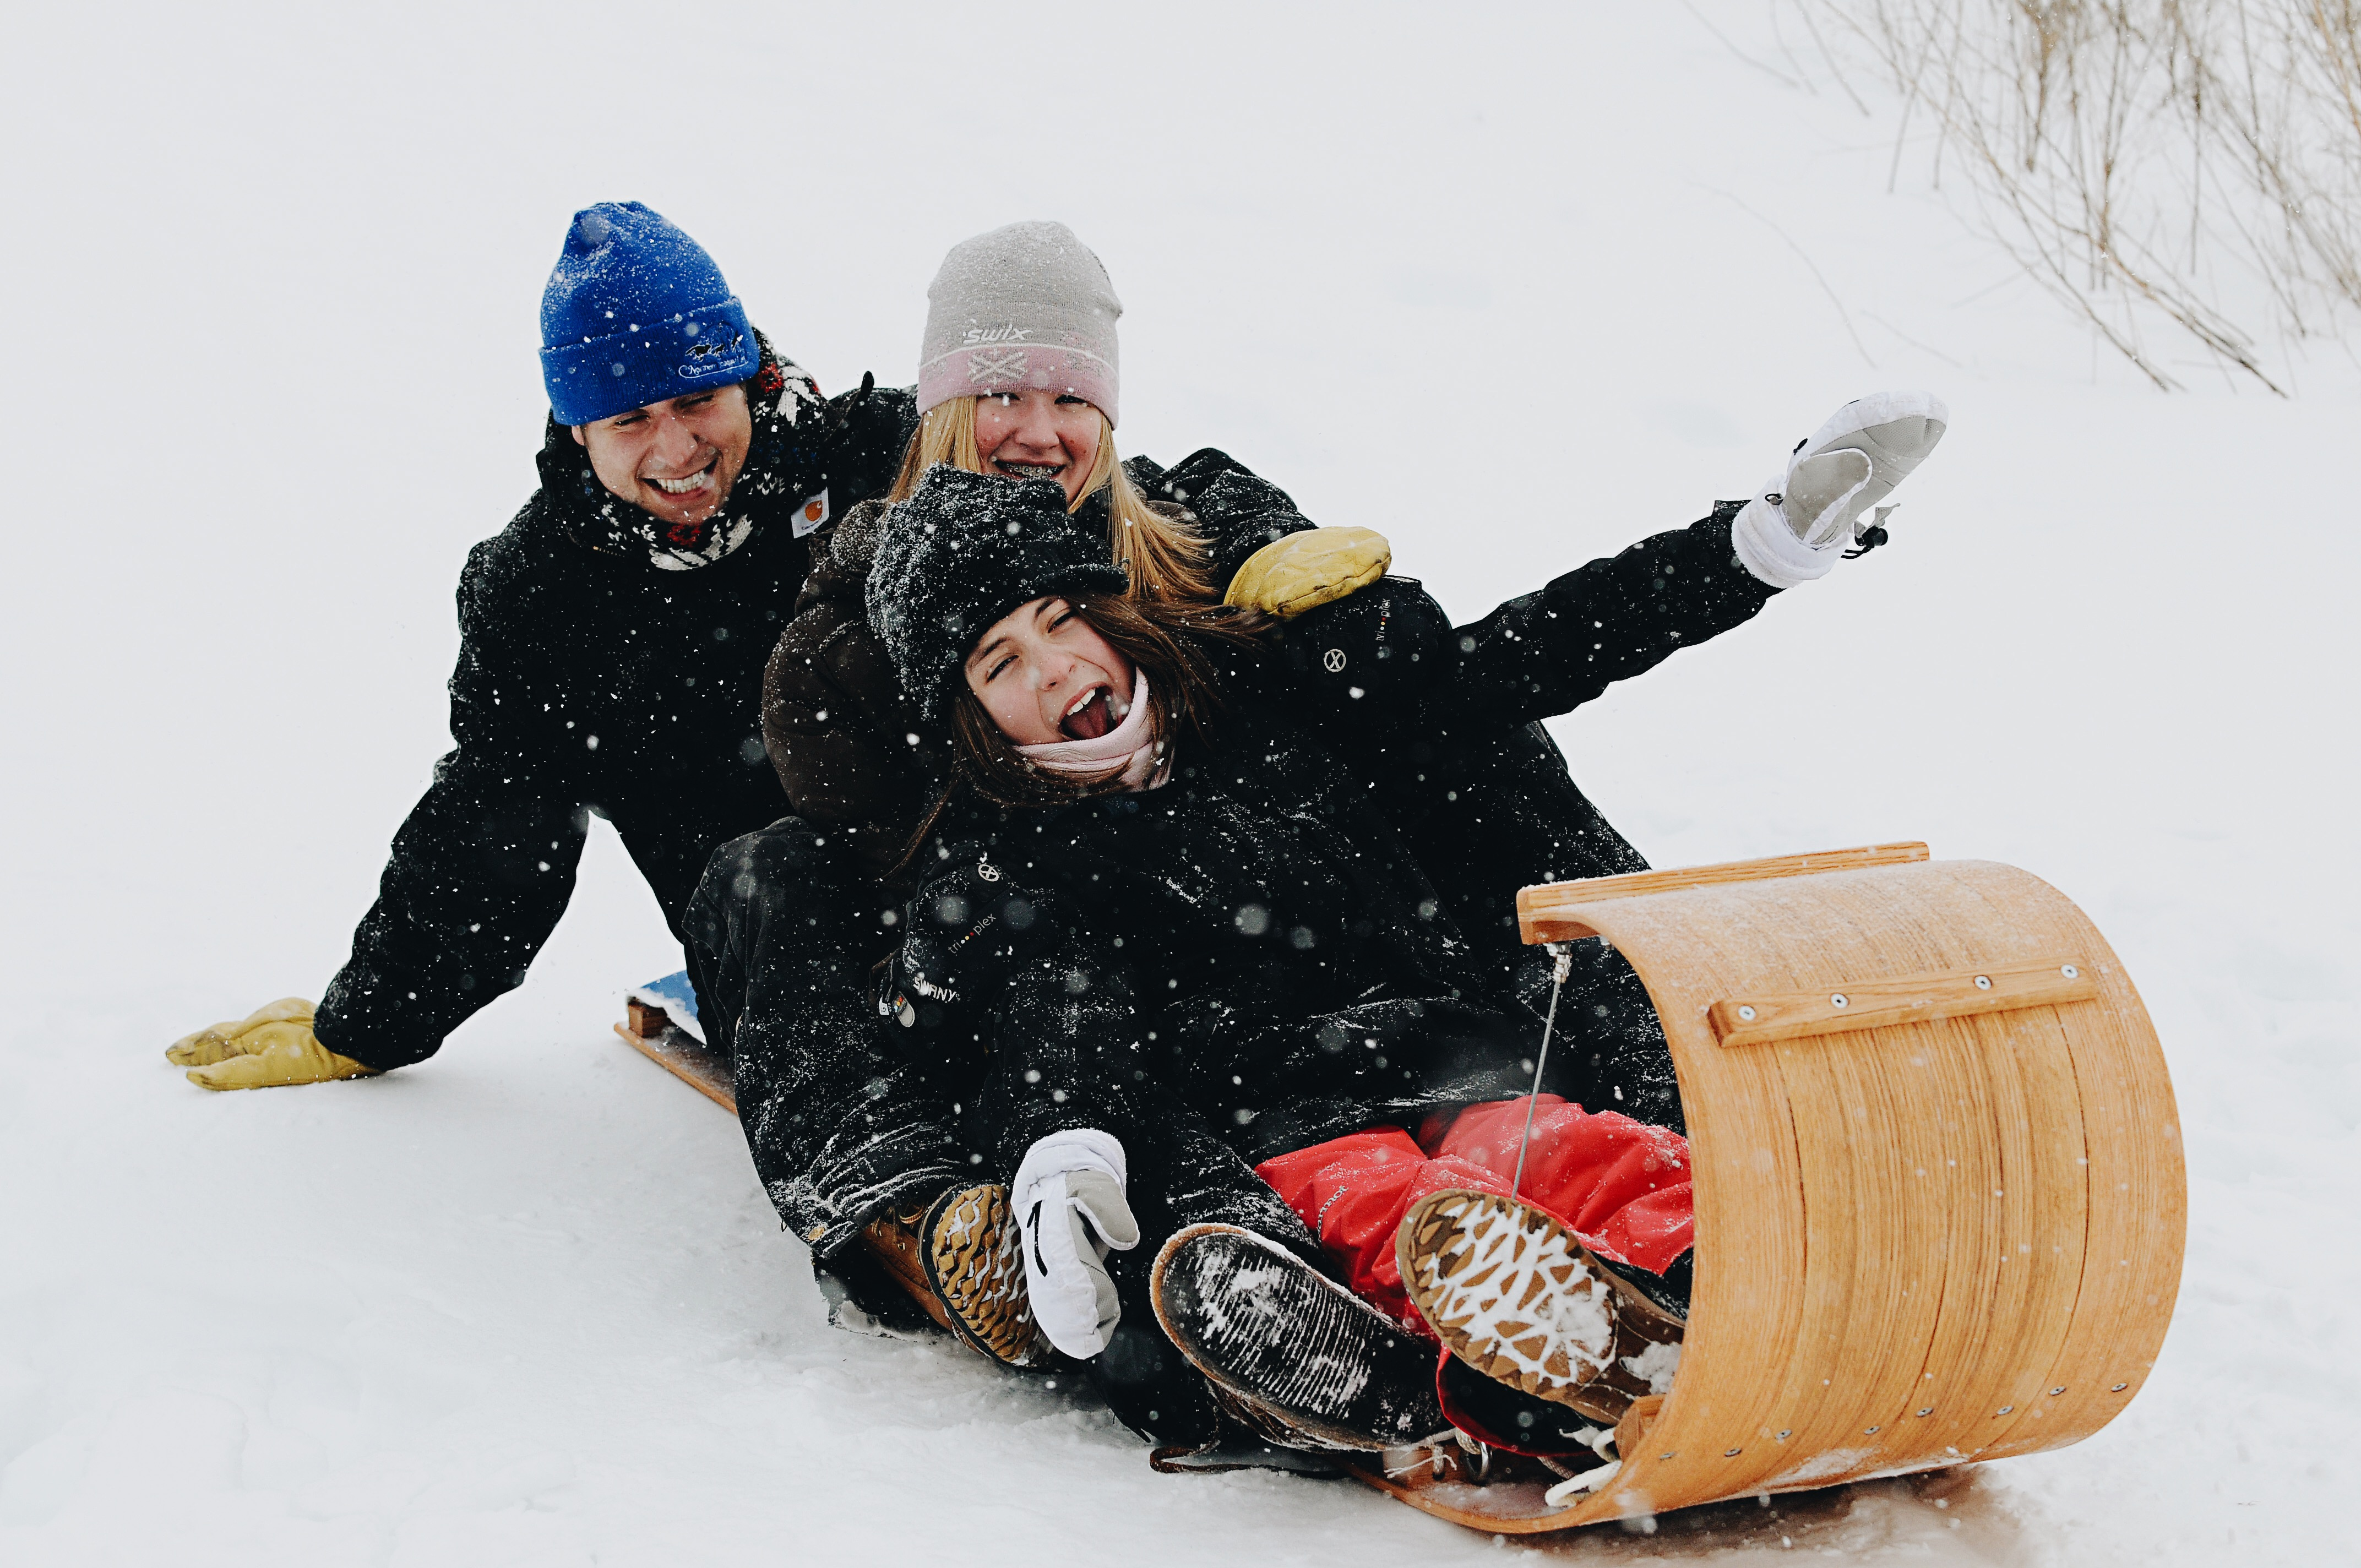 Northern Toboggan Co